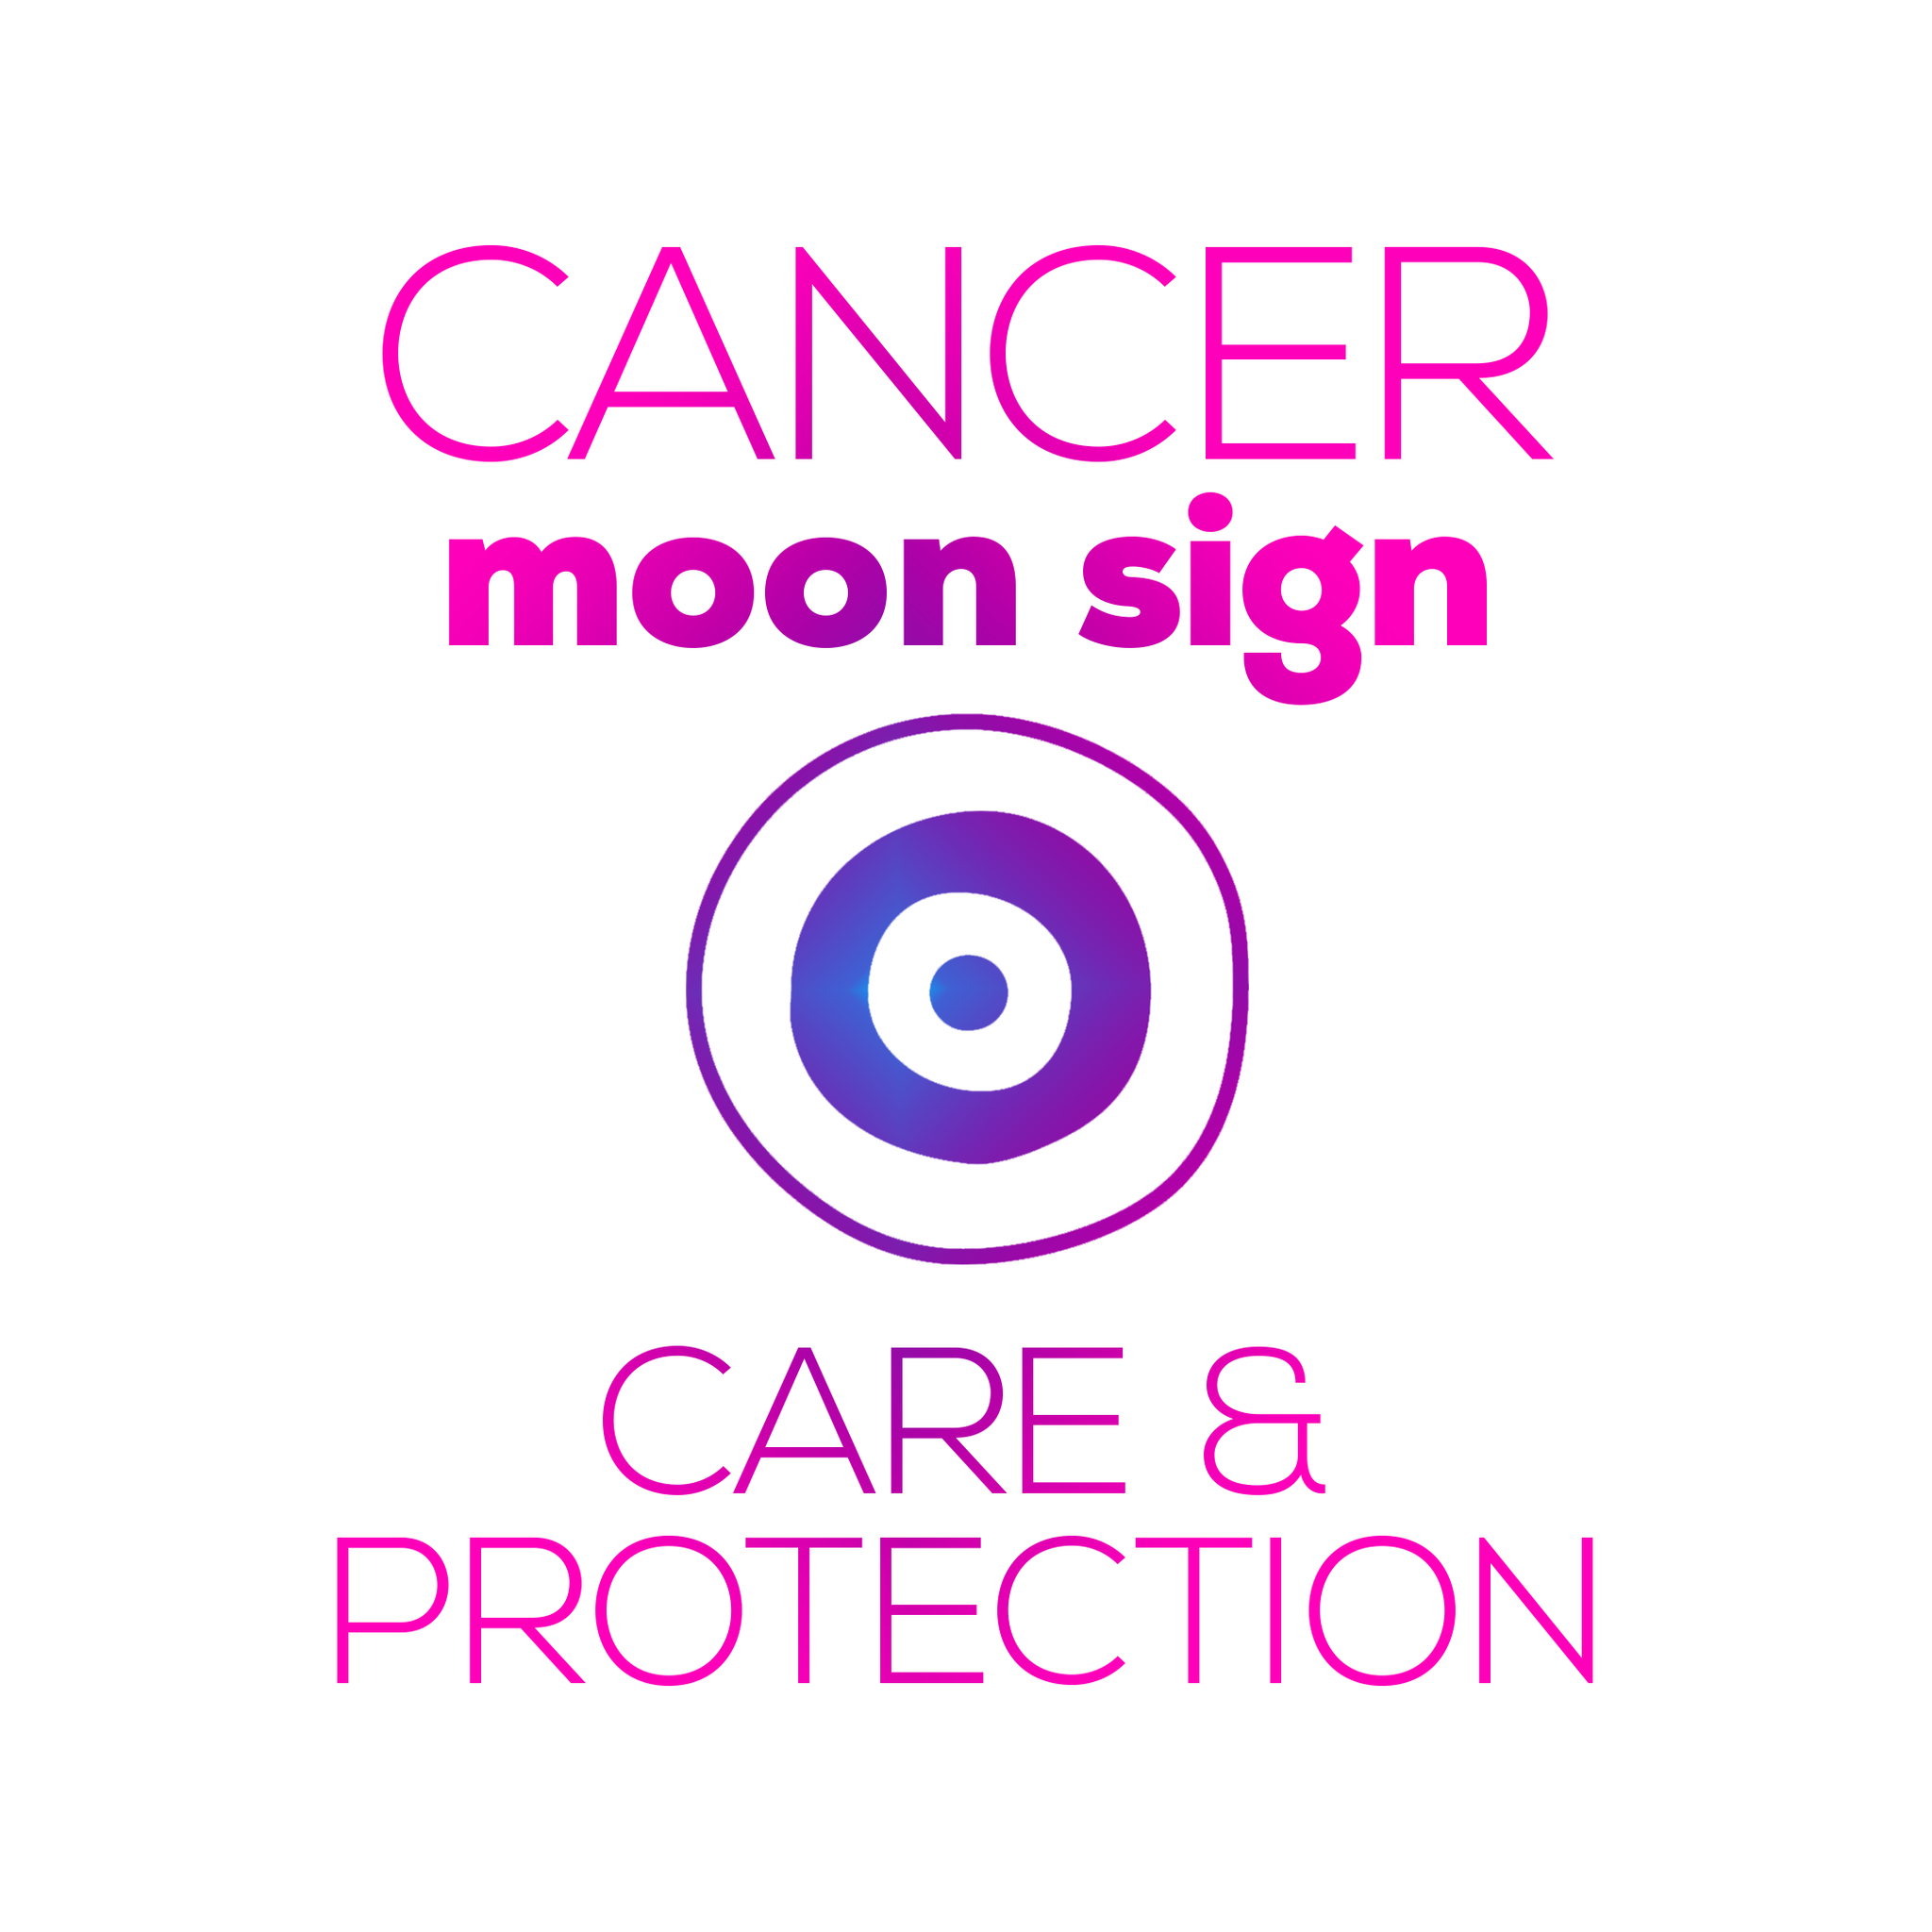 Care + Protection for Your Moon Sign - Cancer